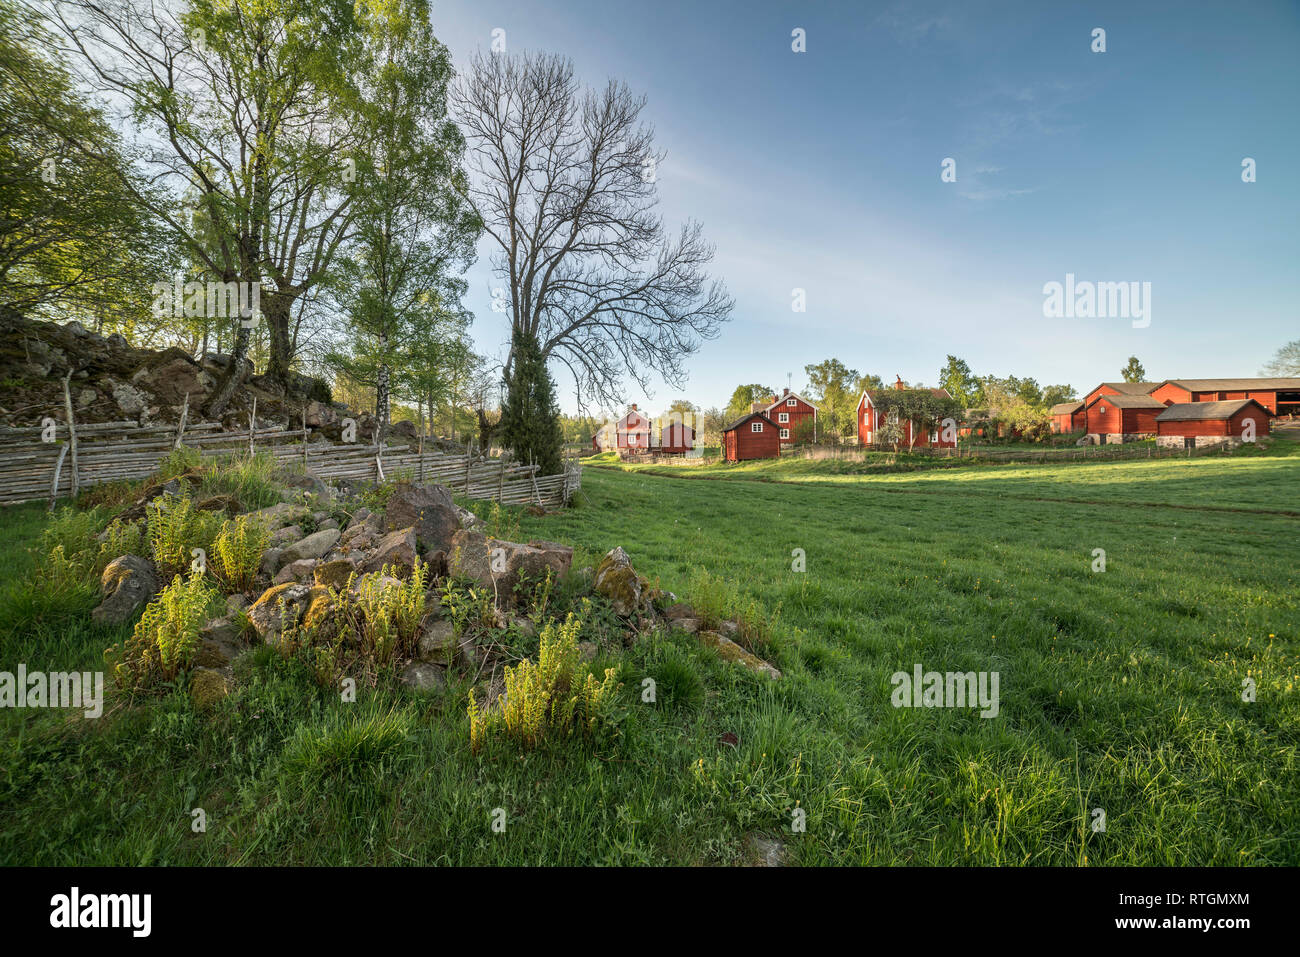 Old farm houses and traditional roundpole fence in a rural landscape at the village Stensjo by in Smaland, Sweden, Scandinavia - Stock Image